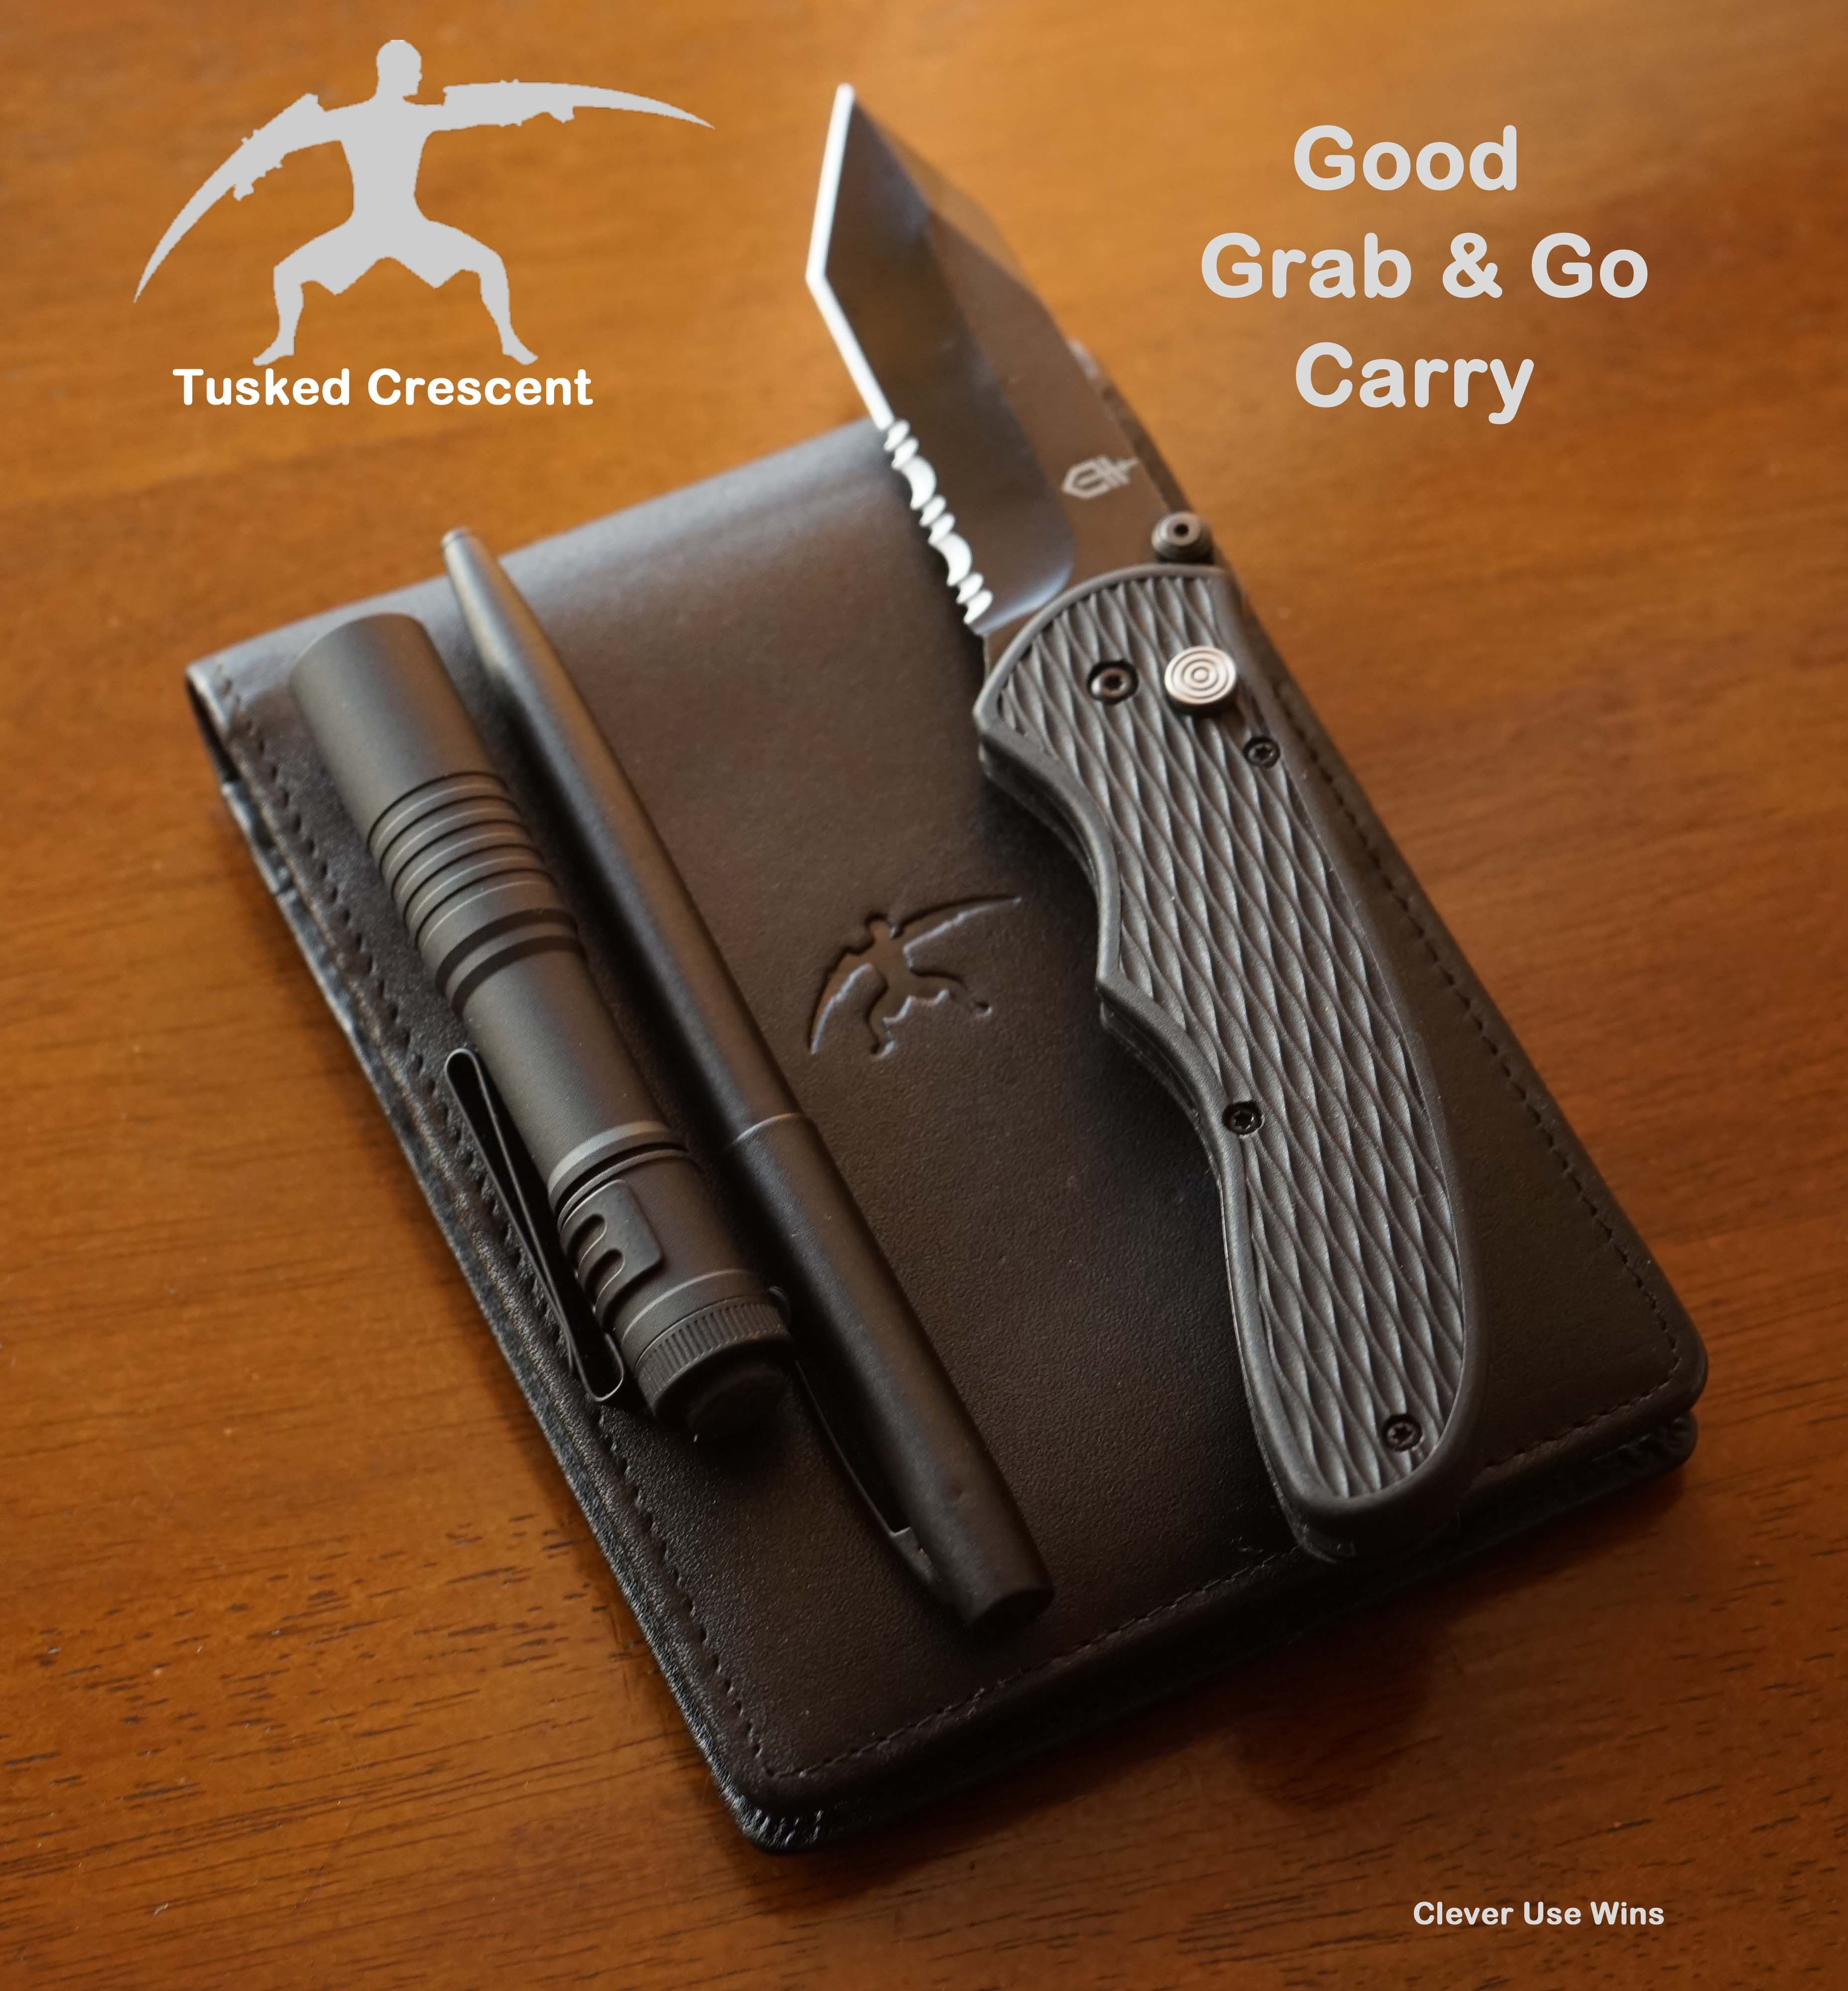 Good Grab & Go Carry Tusked Crescent Pocketbook $24 with